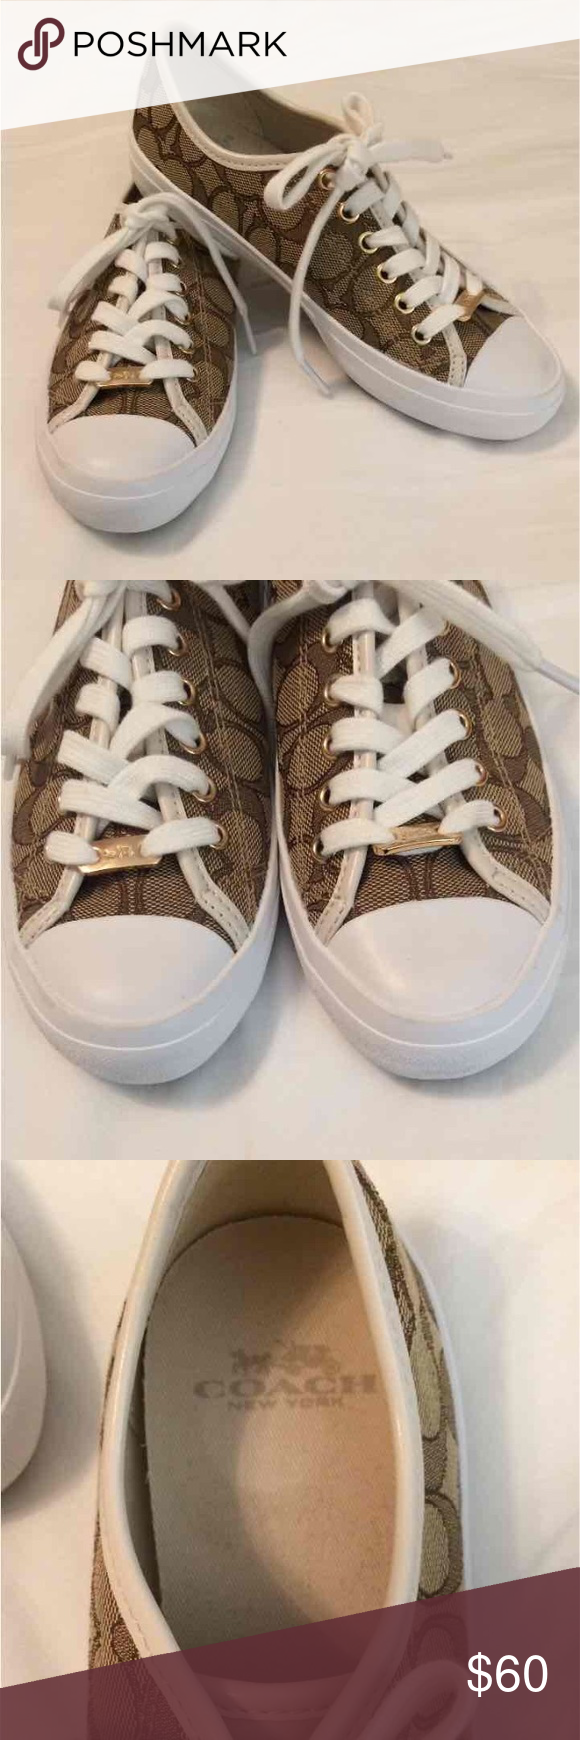 NEW Coach Tan Signature Tennis Shoes Coach Tan Signature Tennis Shoes Sneakers •NEW without tags •Two sizes available! Coach Shoes Sneakers